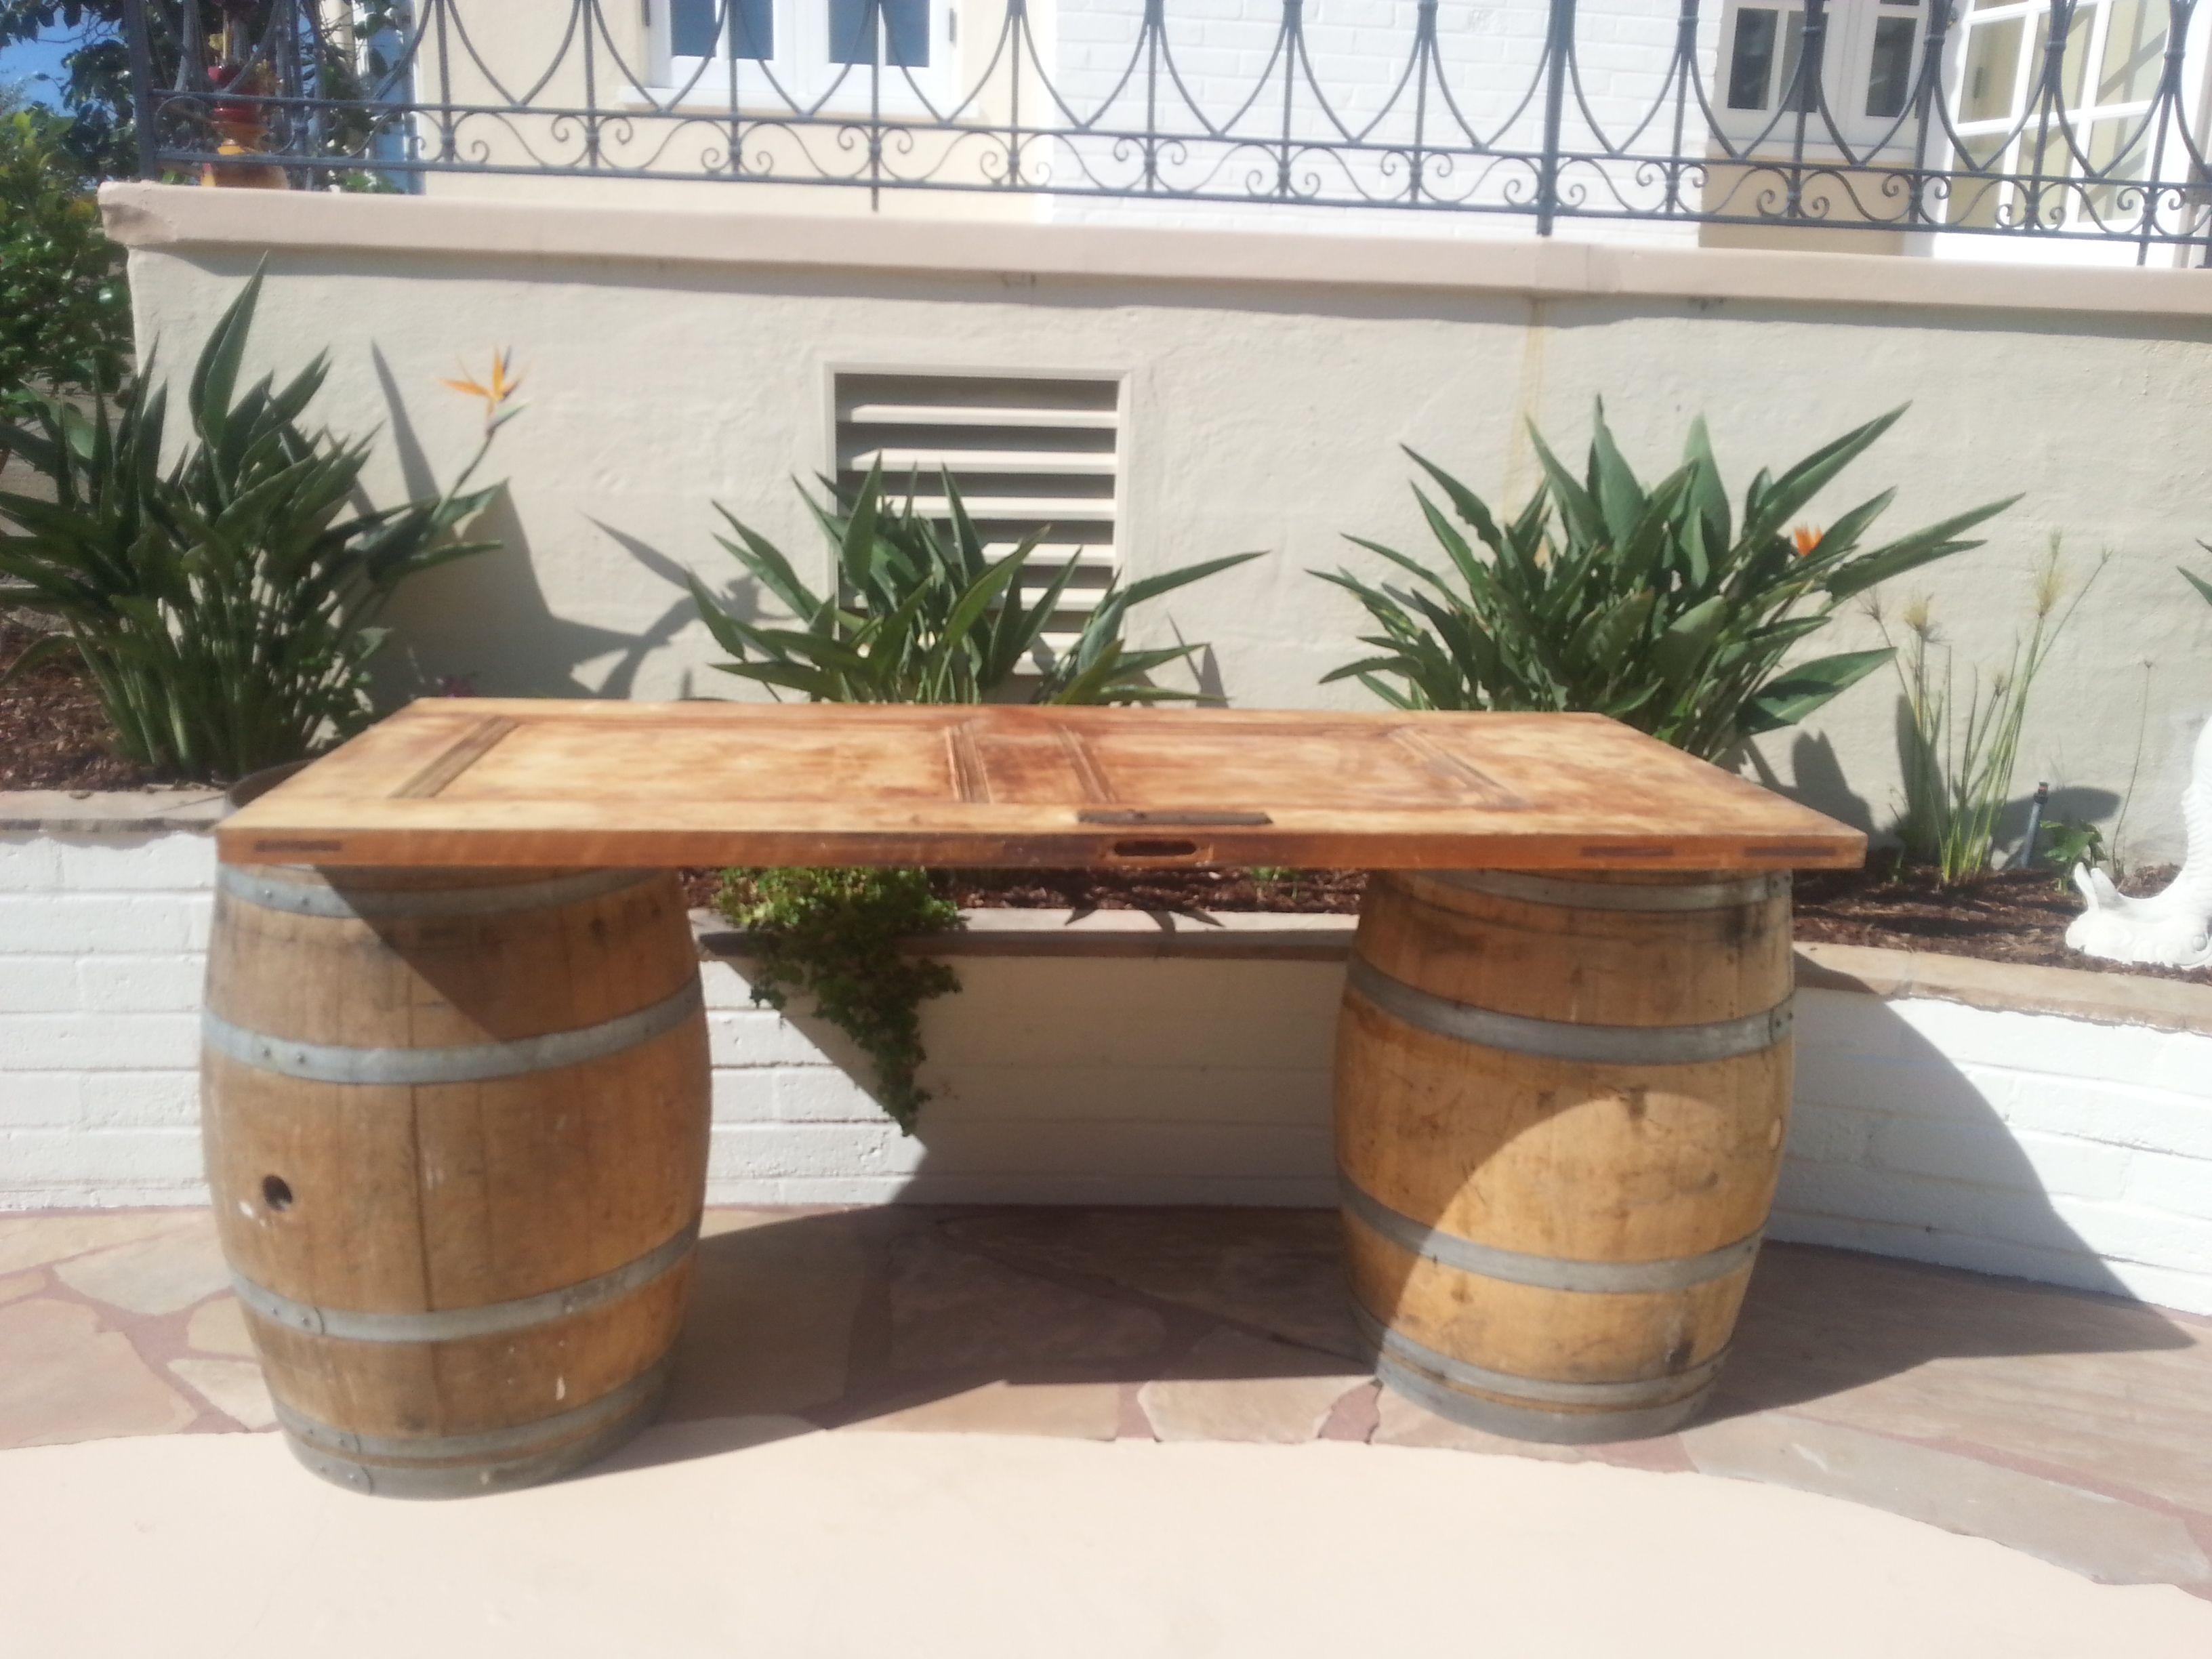 Admirable Rustic Door And Wine Barrel Table Download Free Architecture Designs Scobabritishbridgeorg